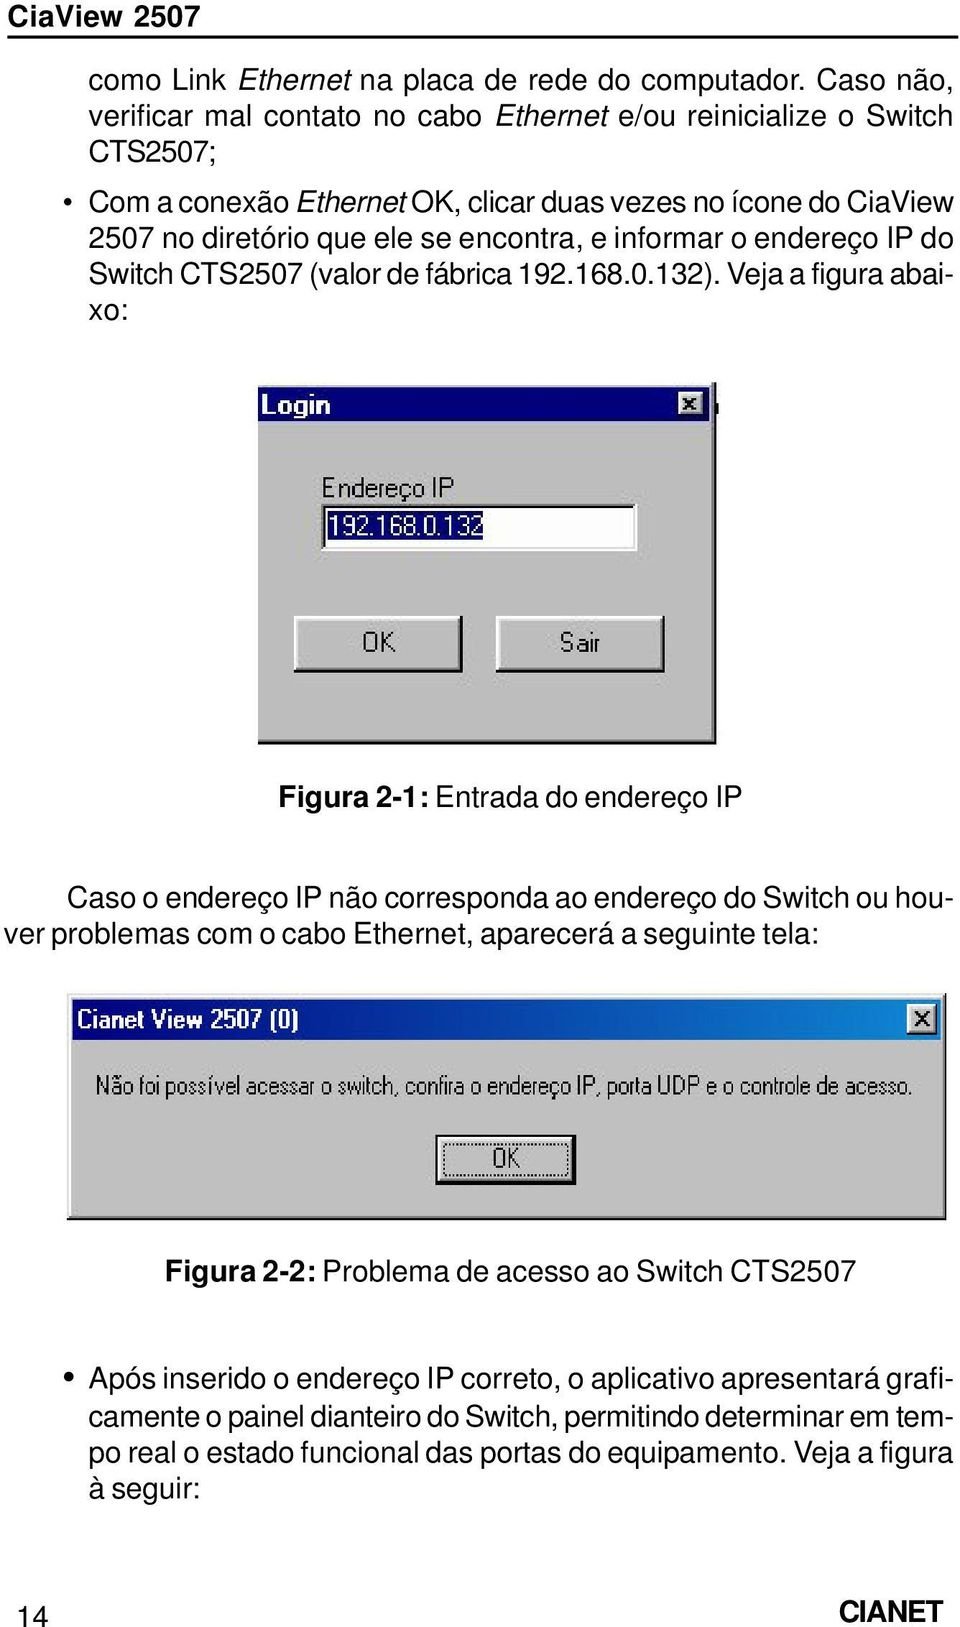 informar o endereço IP do Switch CTS2507 (valor de fábrica 192.168.0.132).